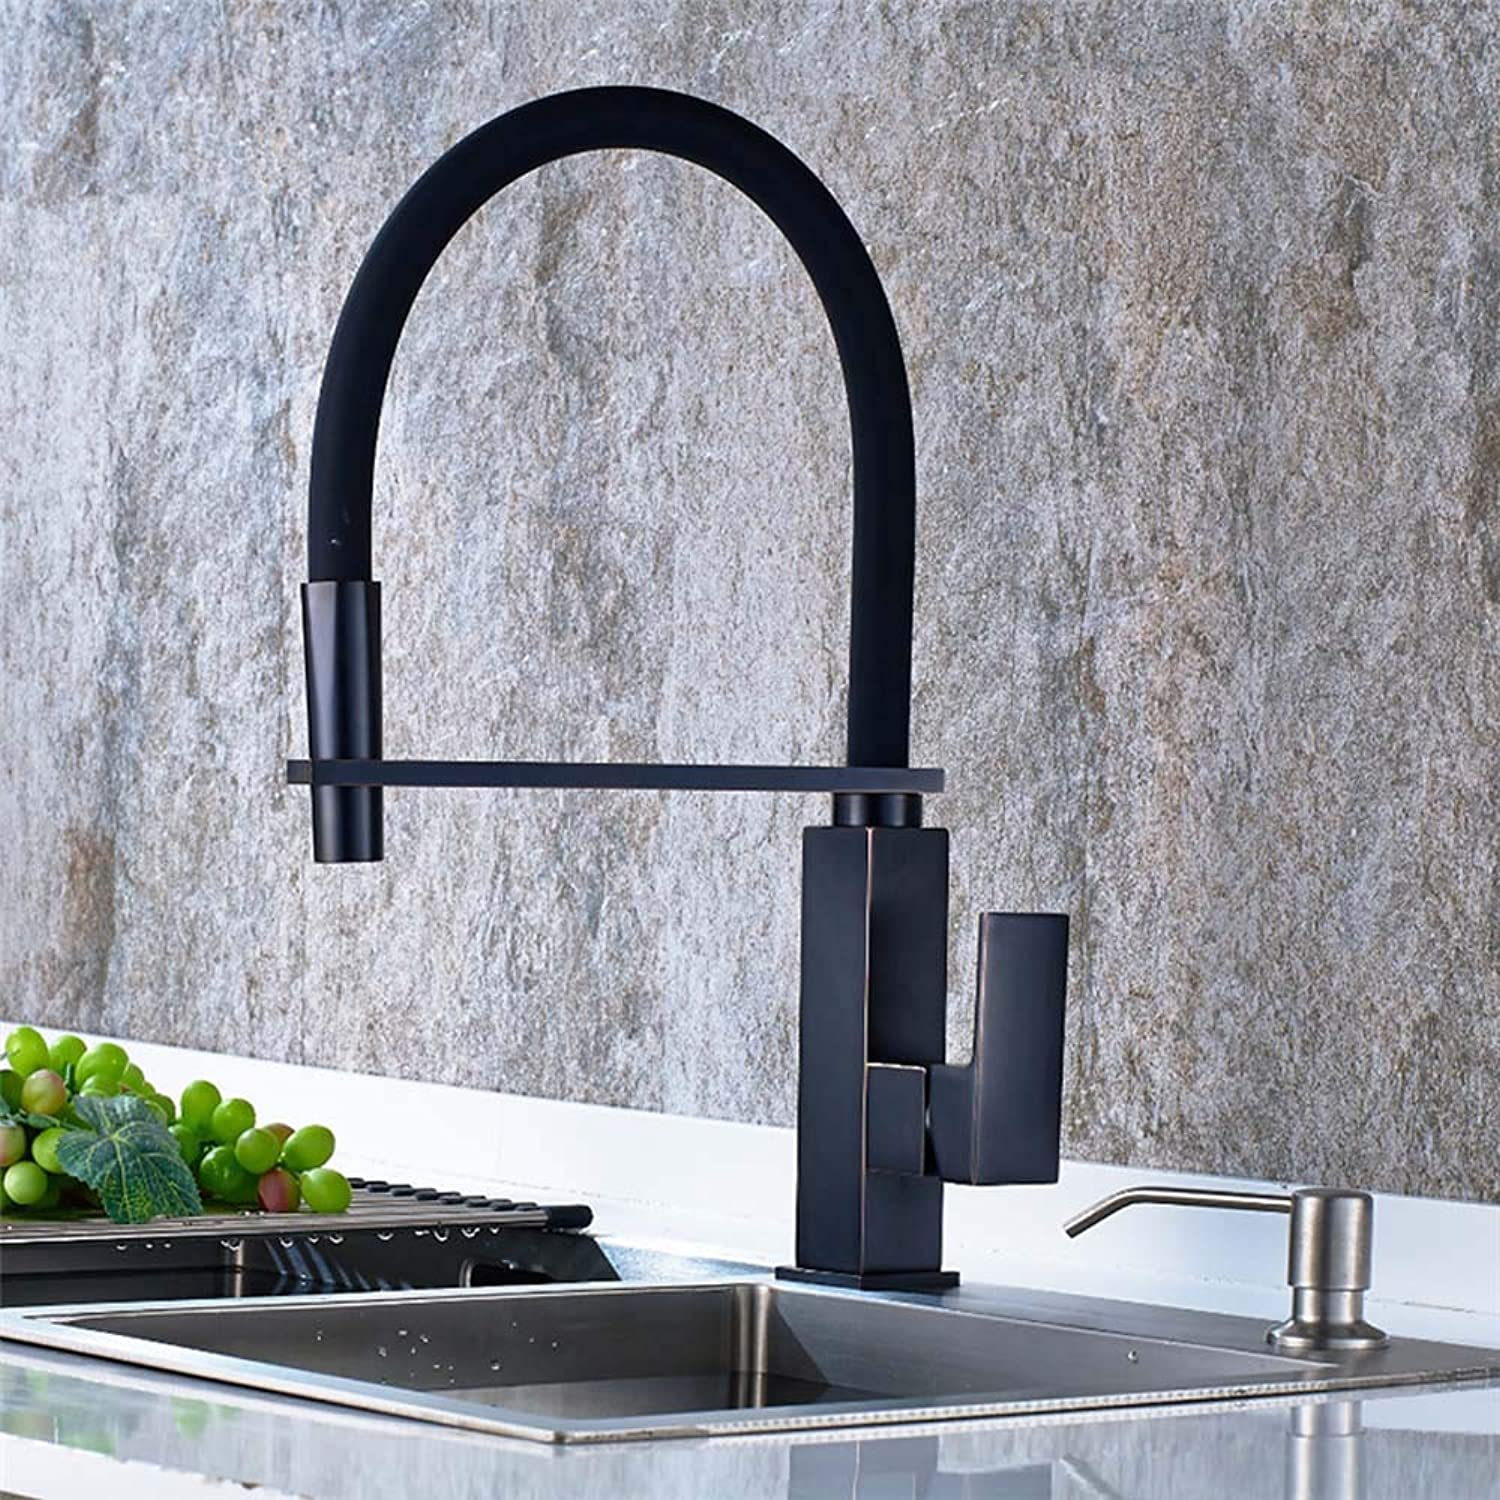 FUSKANG Oil Scrubbed Kitchen Faucet Bronze Black Hot And Cold, Kitchen Sink Wash Basin Faucet Pull Down, Antique Bowl Sink Faucet Mixer Turned